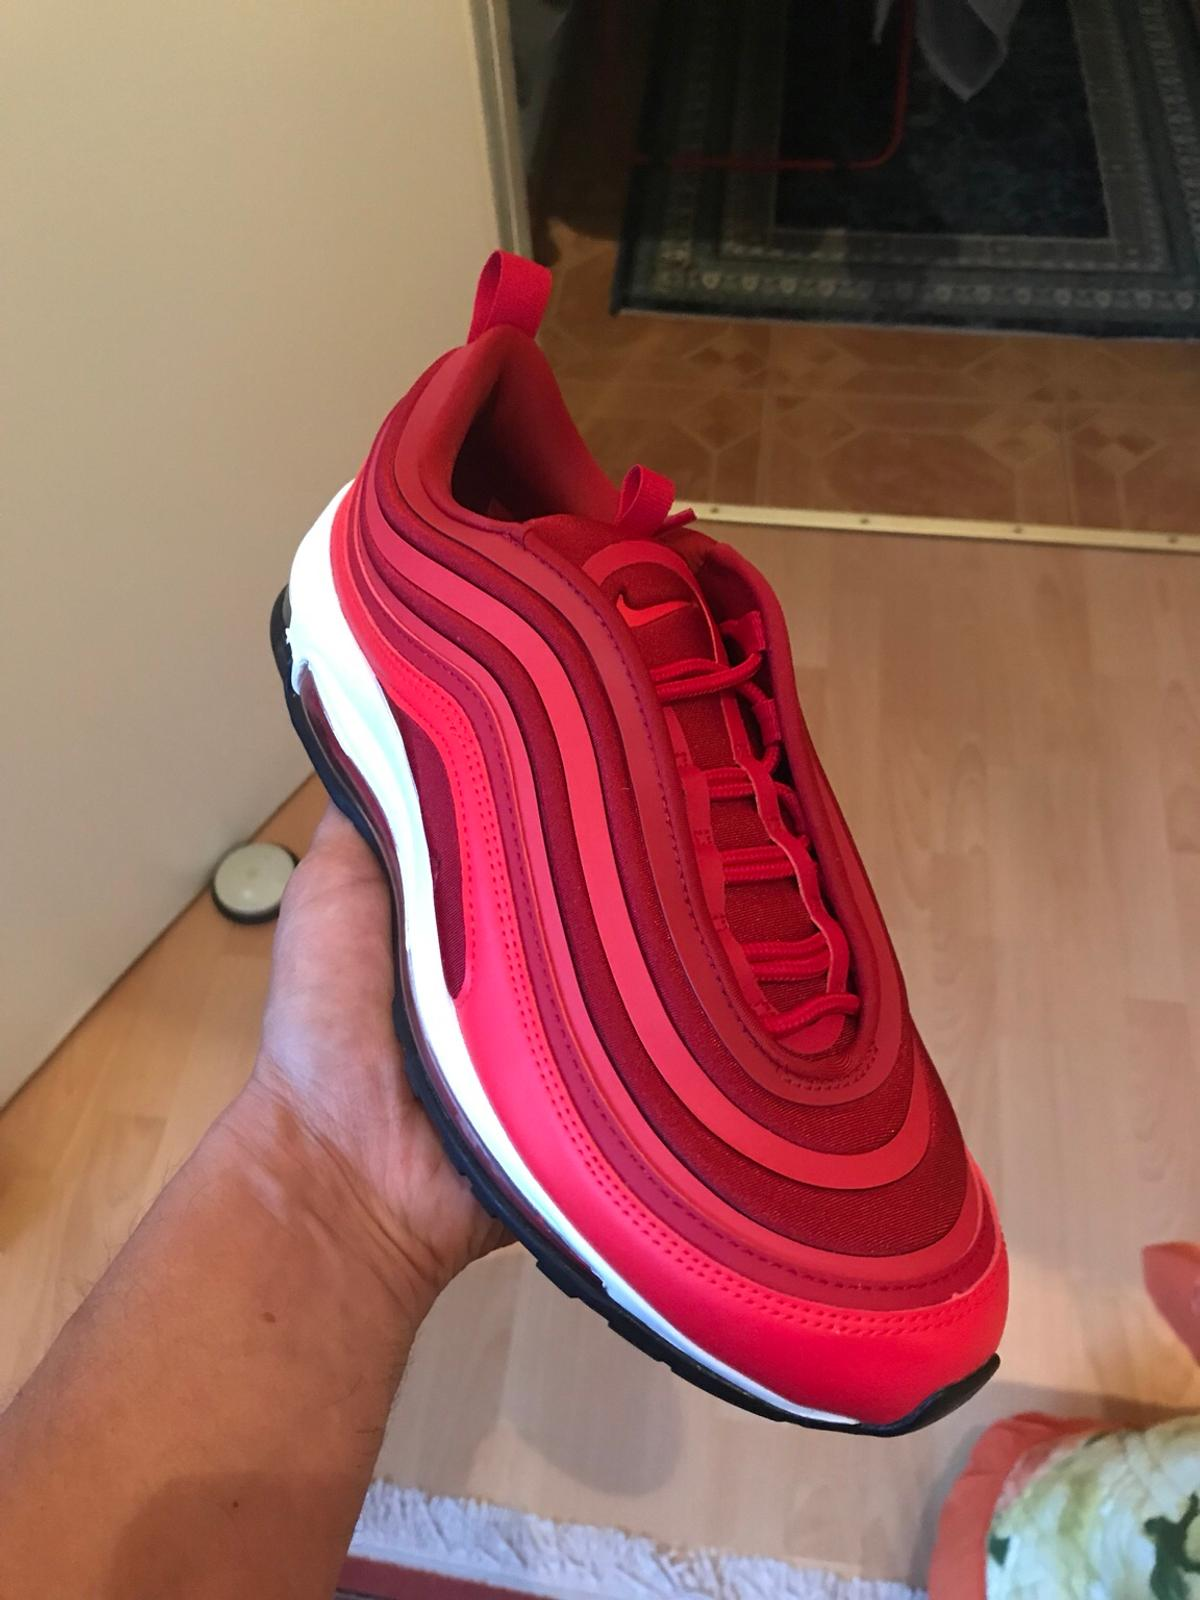 Nike Air Max 97 Rot Red Gr.44 in 13359 Gesundbrunnen für 399